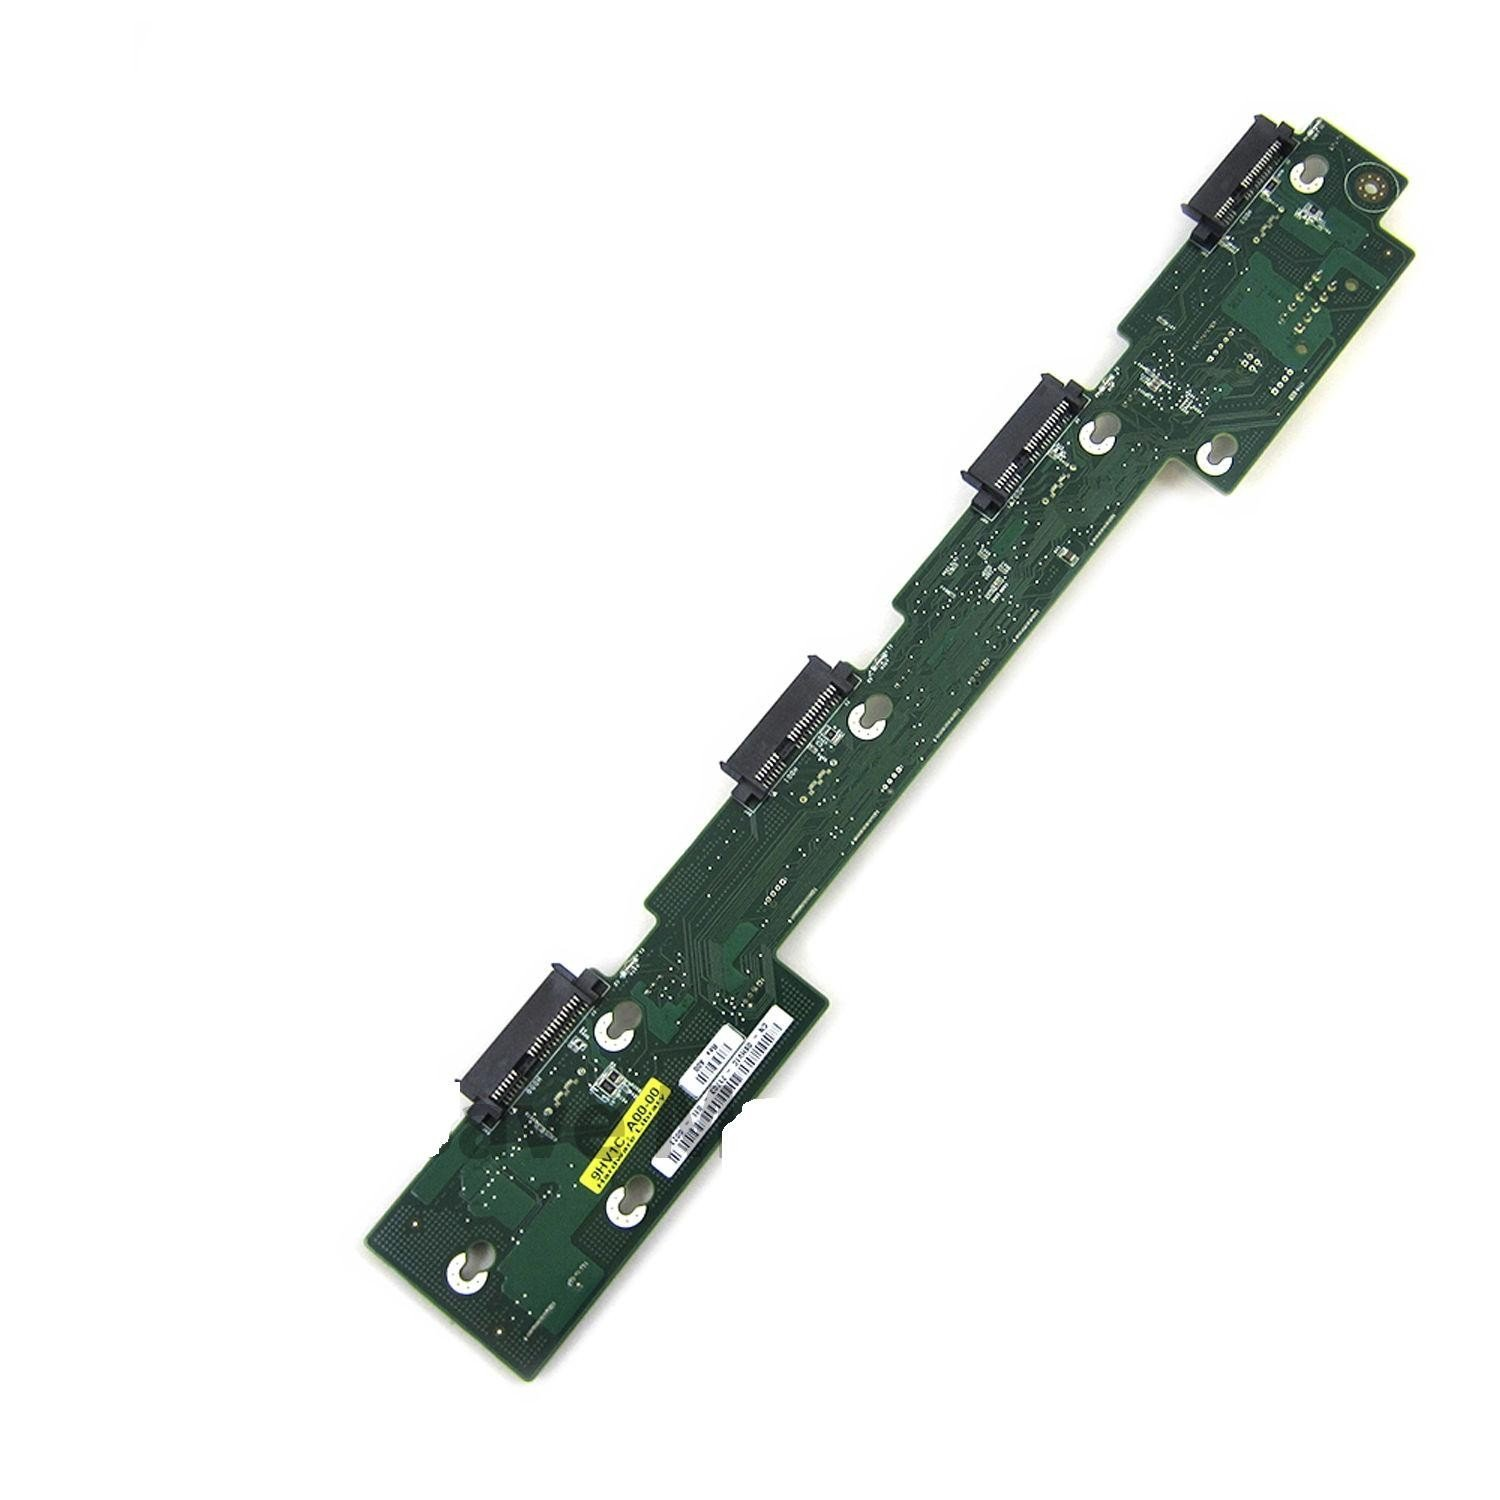 9HV1C - Backplane SAS/SATA 4x3.5 PowerEdge C1100